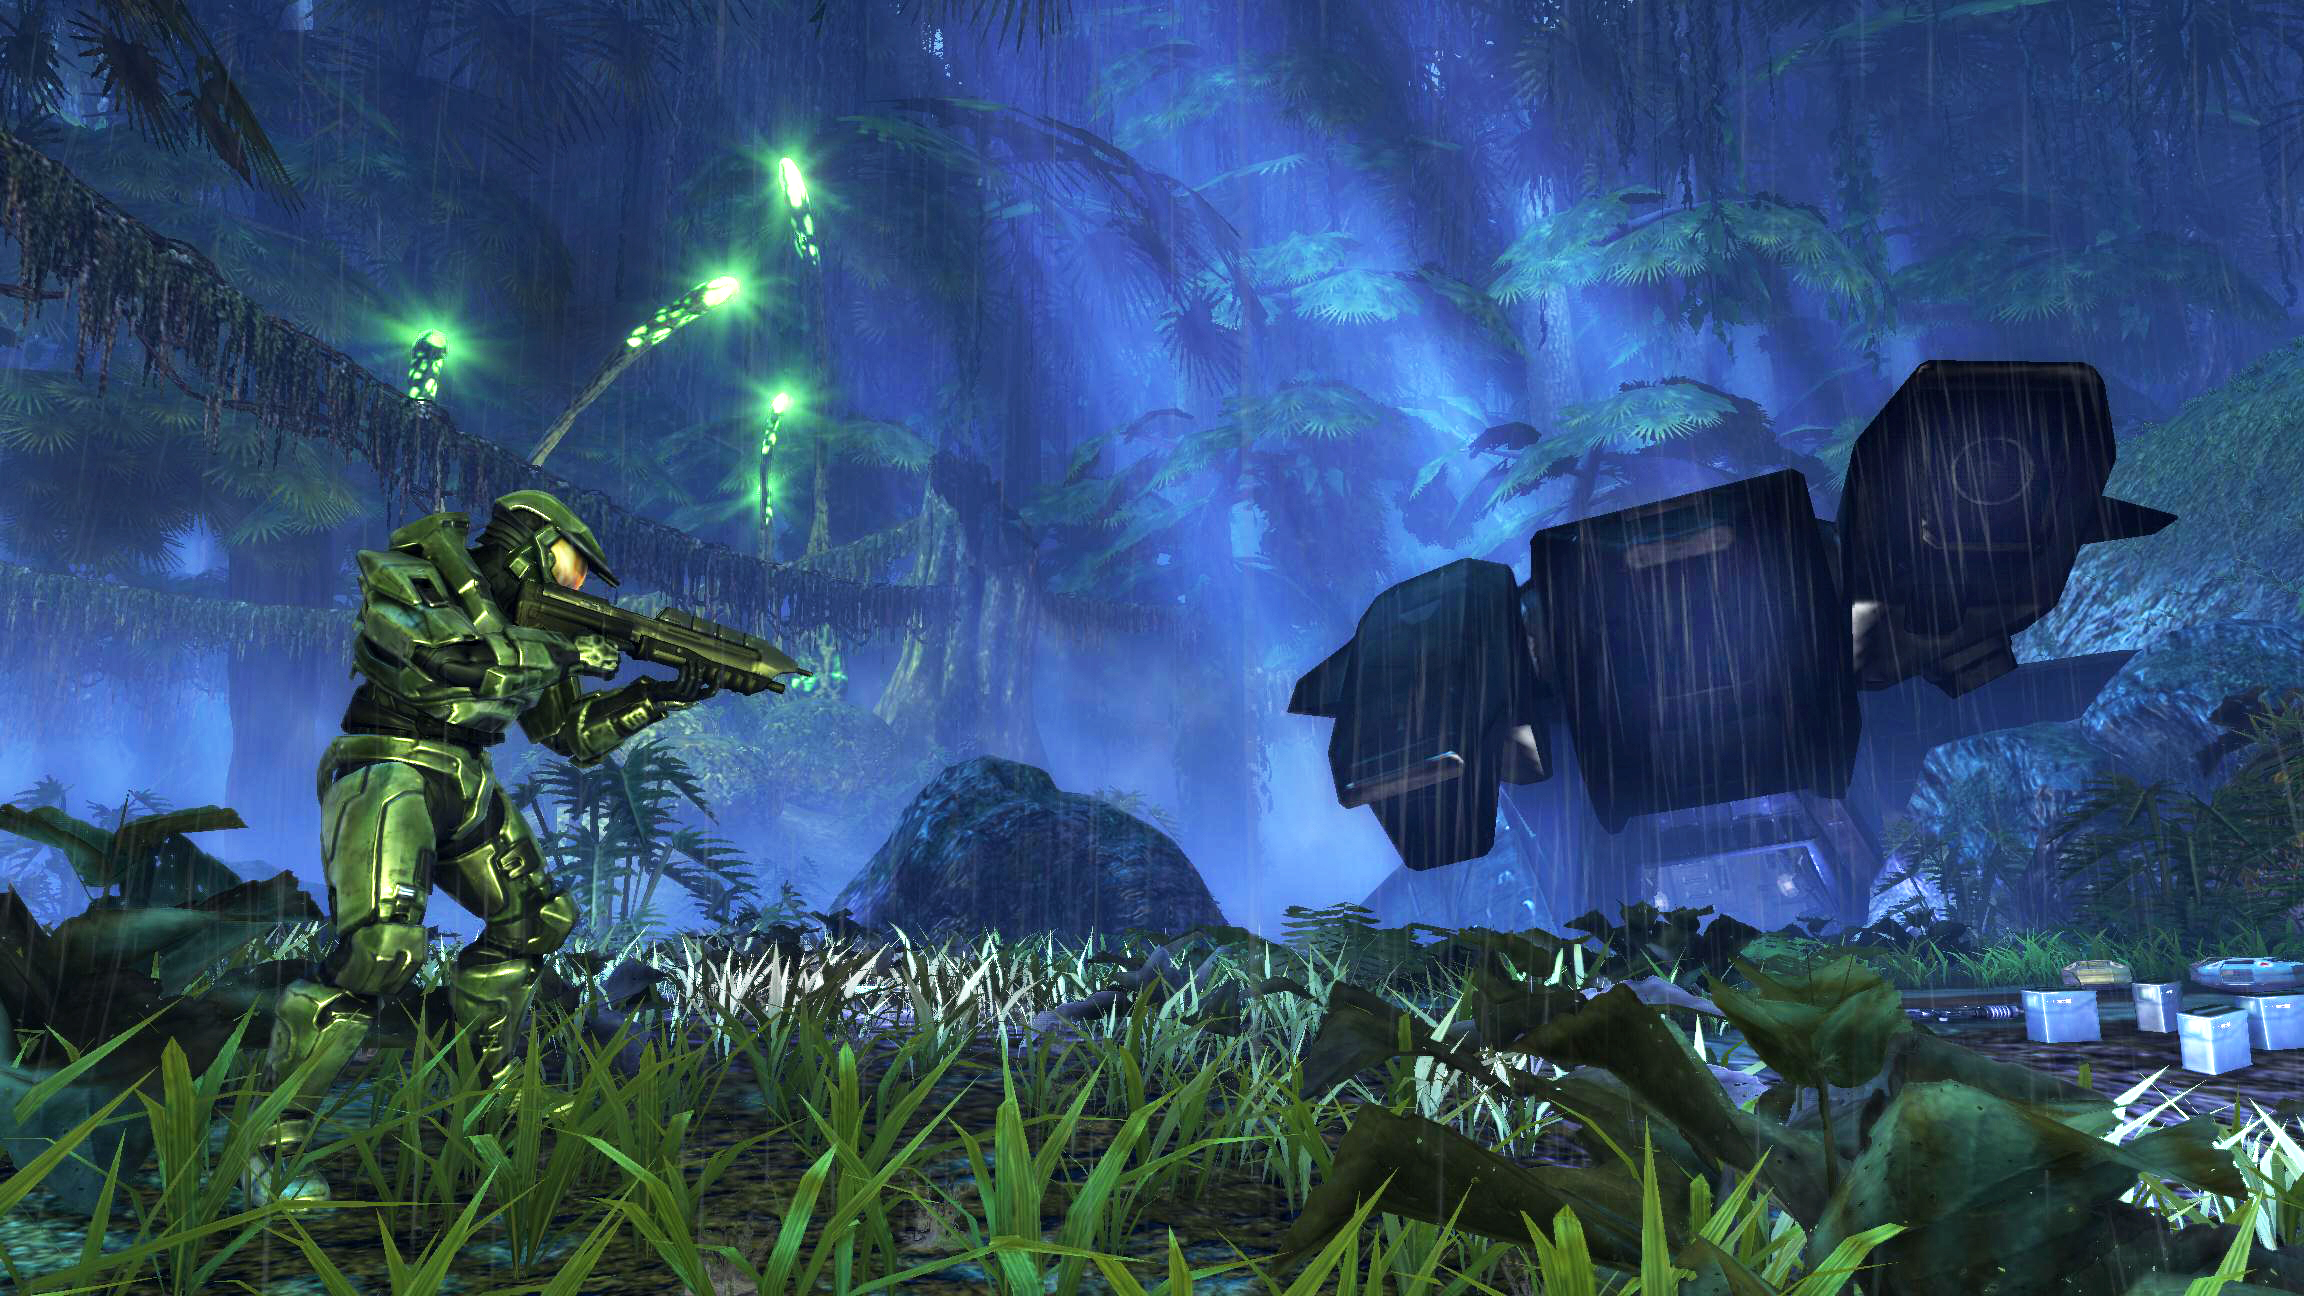 The story behind Halo: Combat Evolved's massive success on